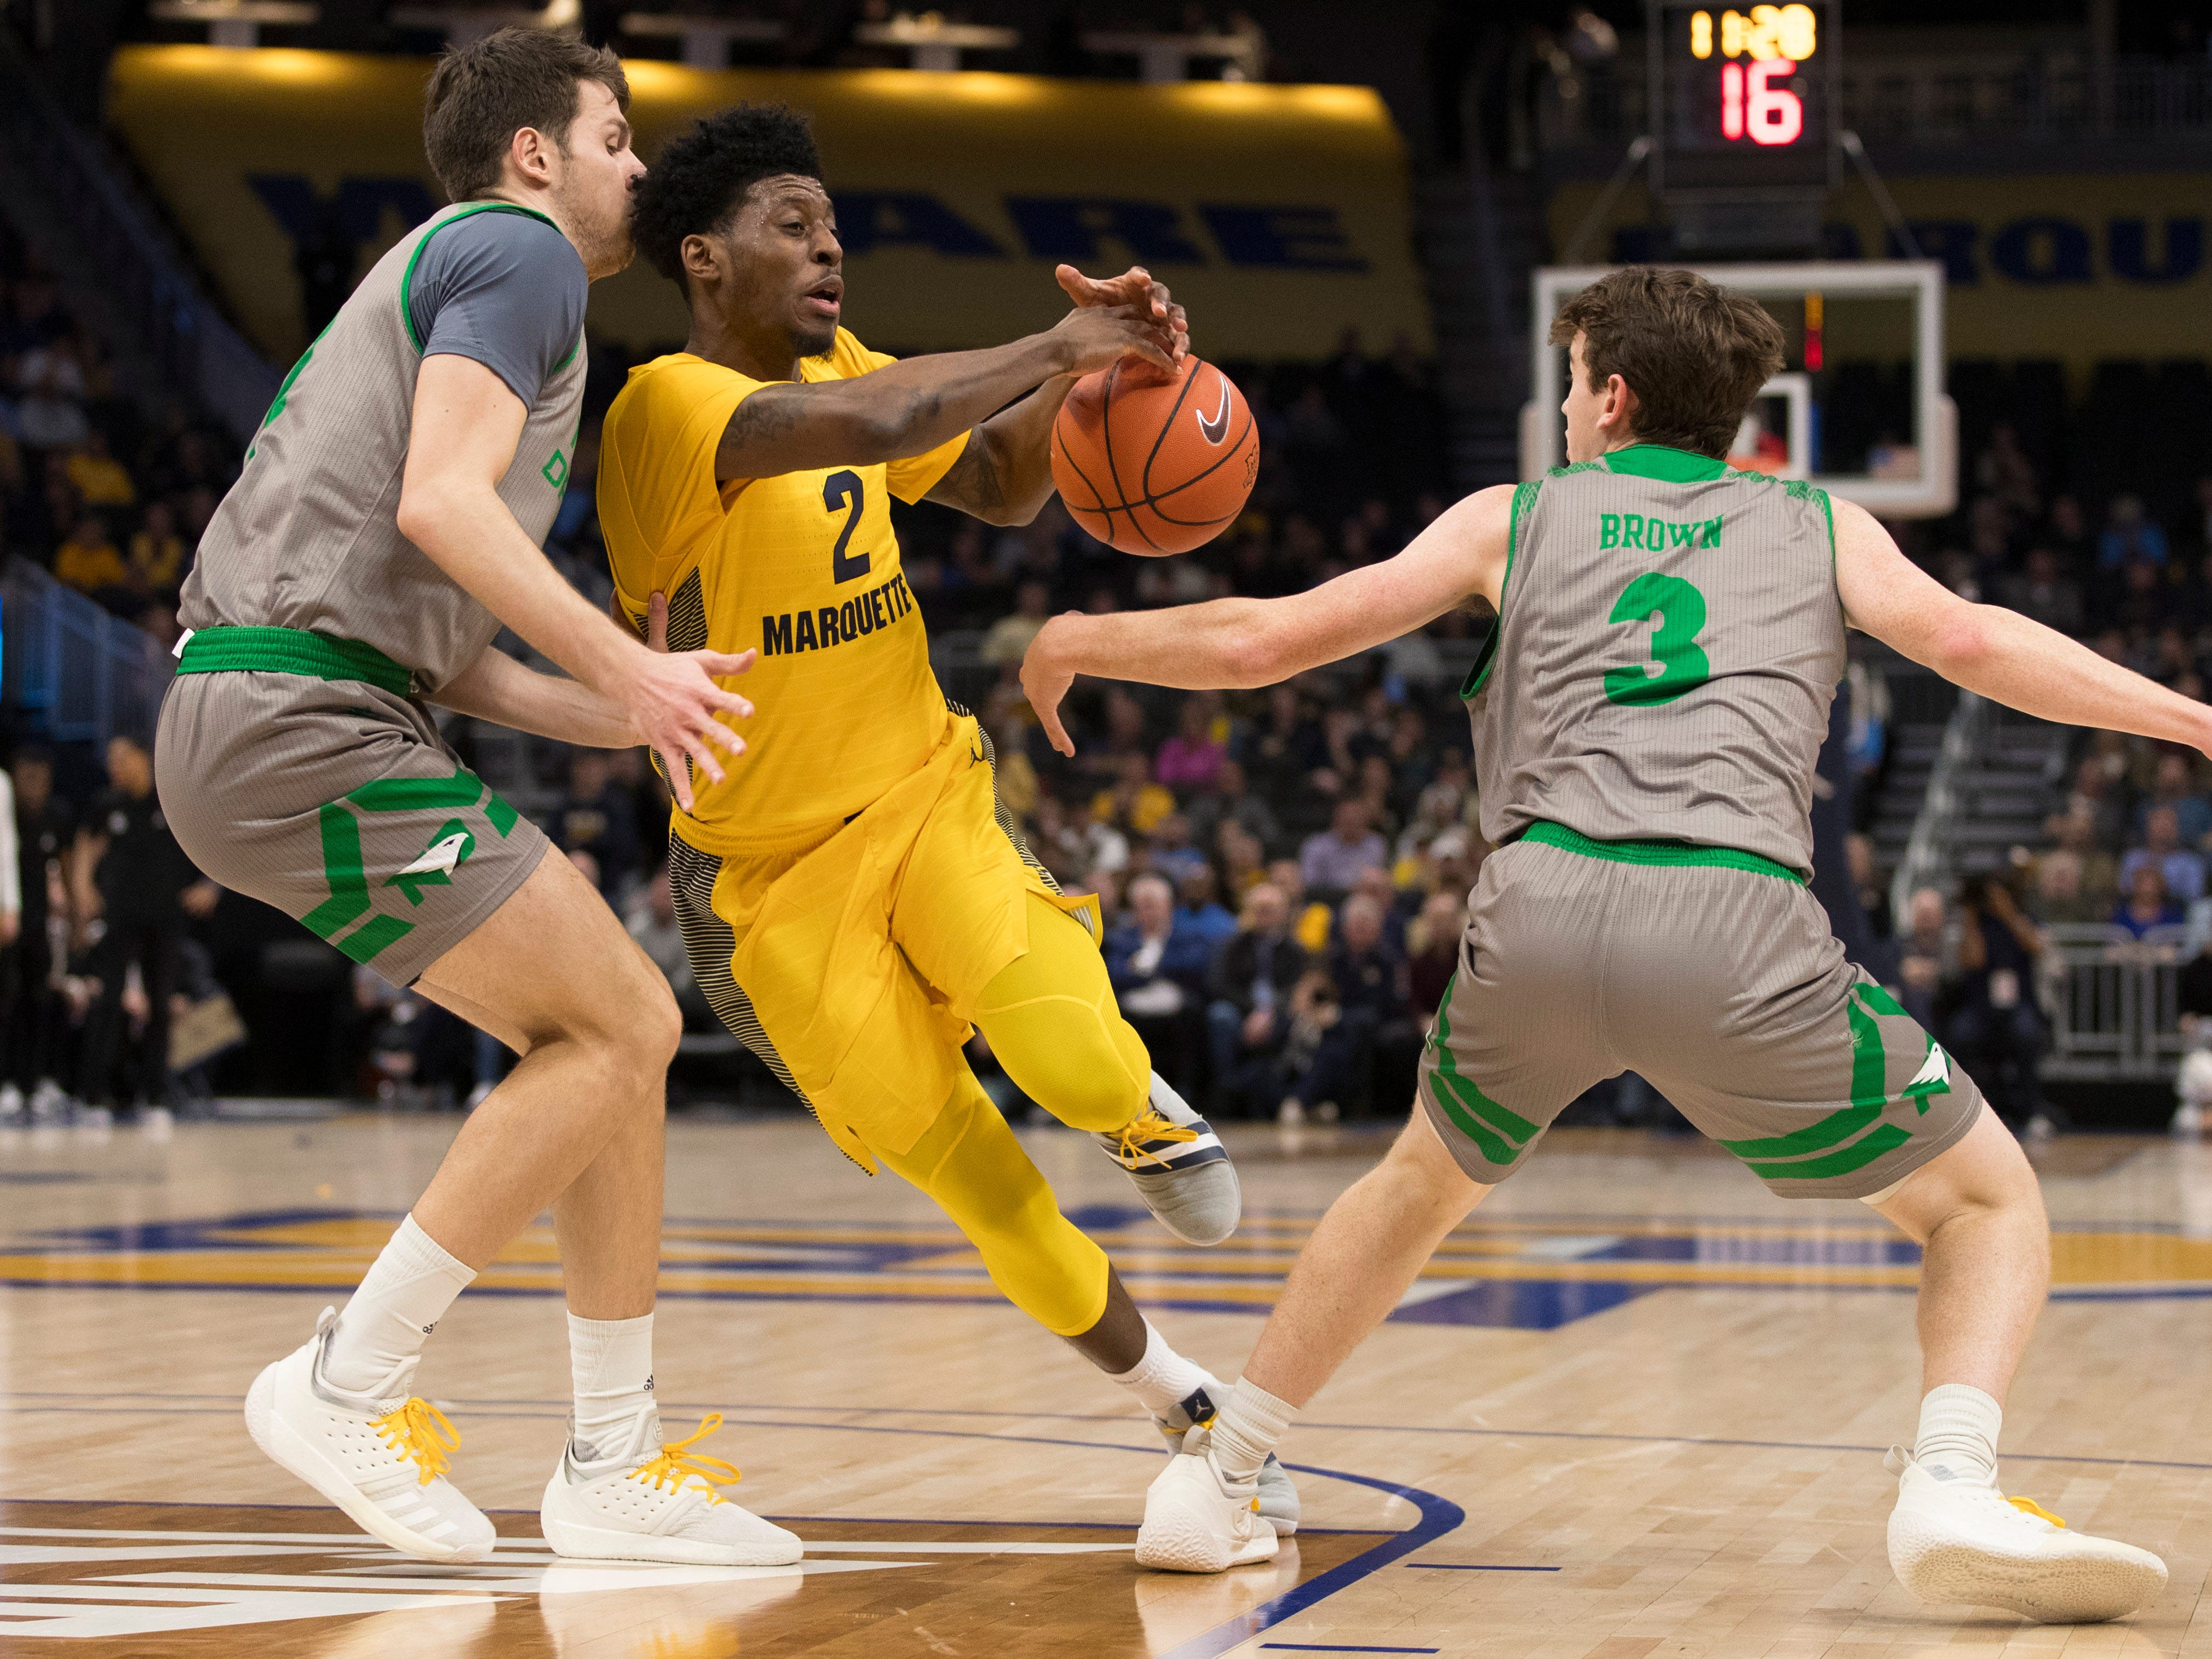 Billy Brown (right) of North Dakota knocks the ball away from a driving Sacar Anim of Marquette during the first half.